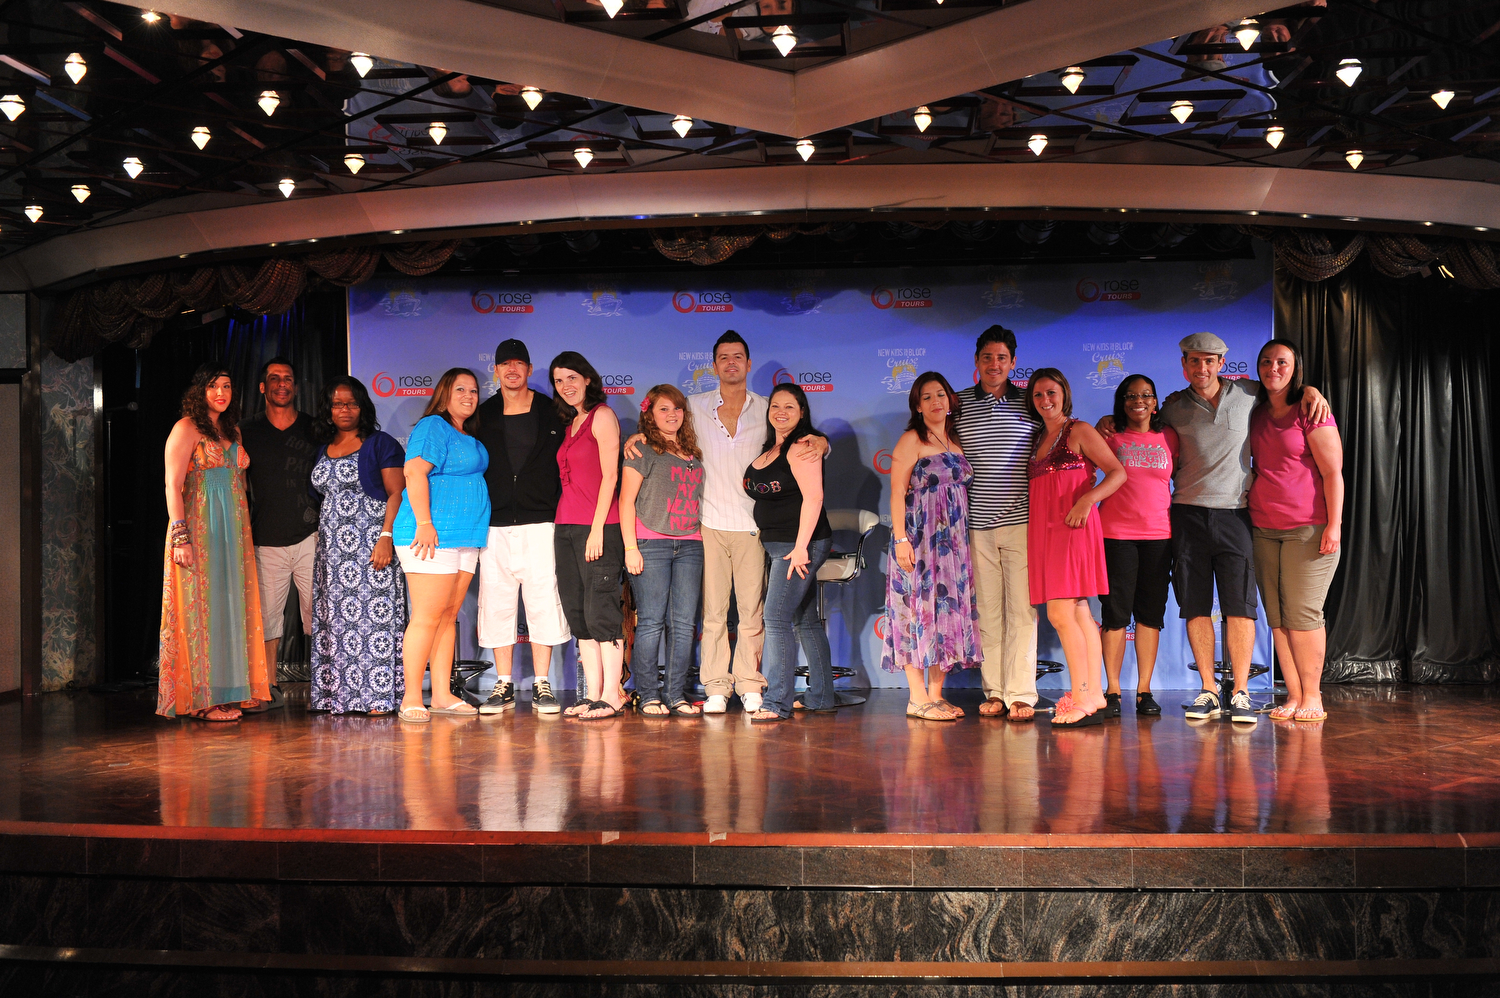 cruise2012pic2.png